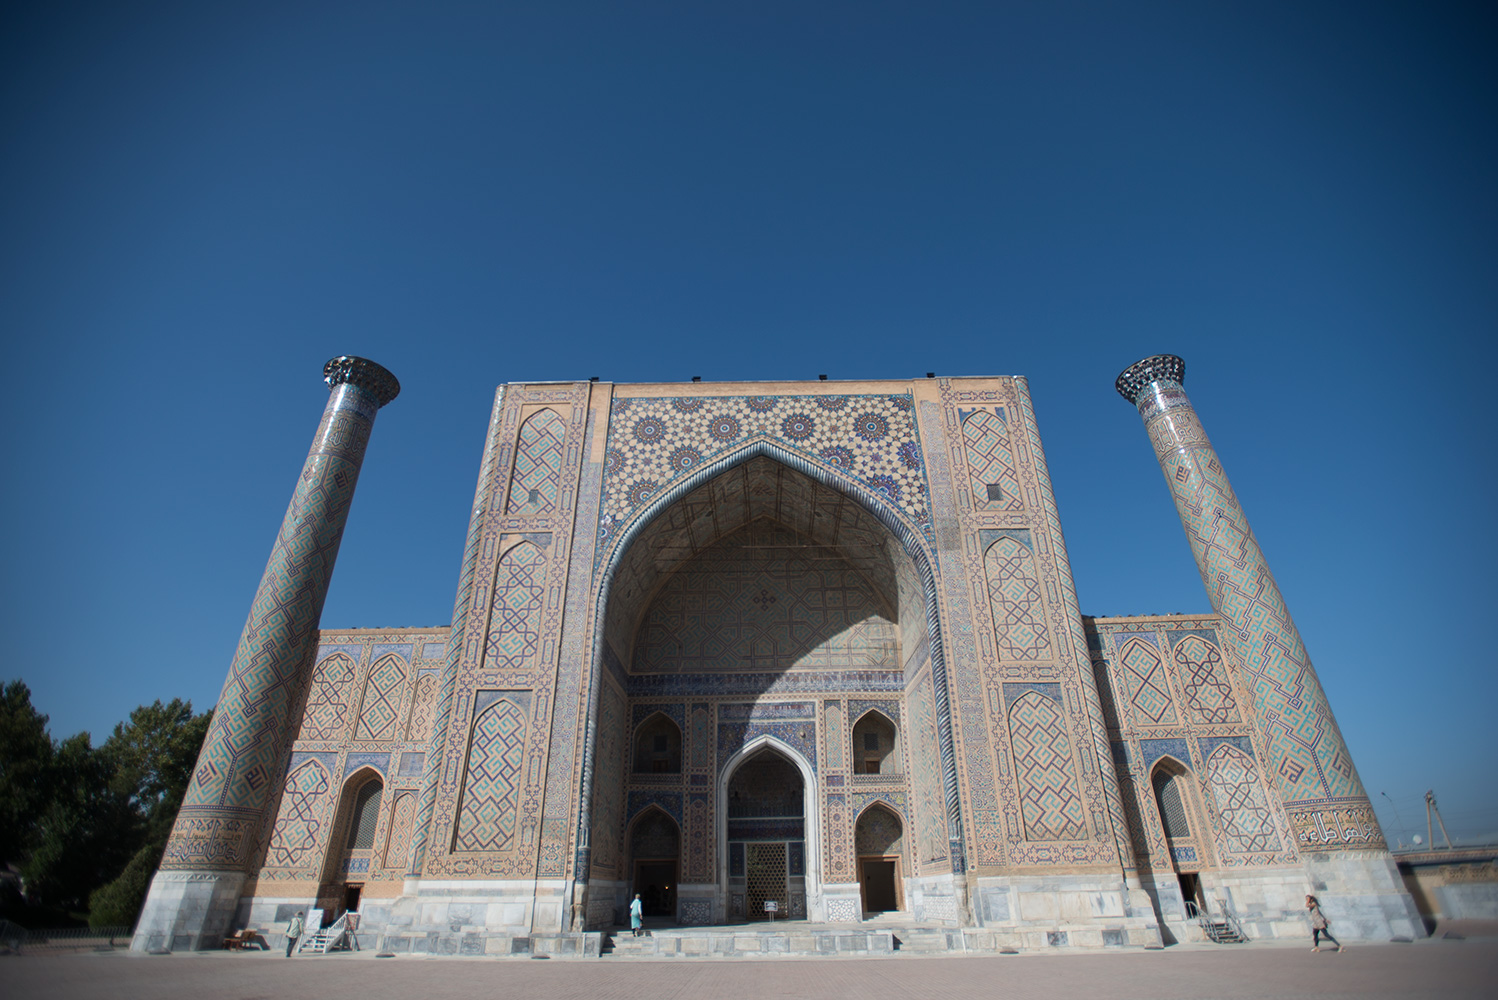 The scholar Ulug Beg was the grandson of Tamurlane, and he built this madrassah (Islamic college) in 1417-20. By the eighteenth century it had fallen into disrepair, but stunning restoration has been accomplished, most notably for the 600th anniversary of his birth in 1994.